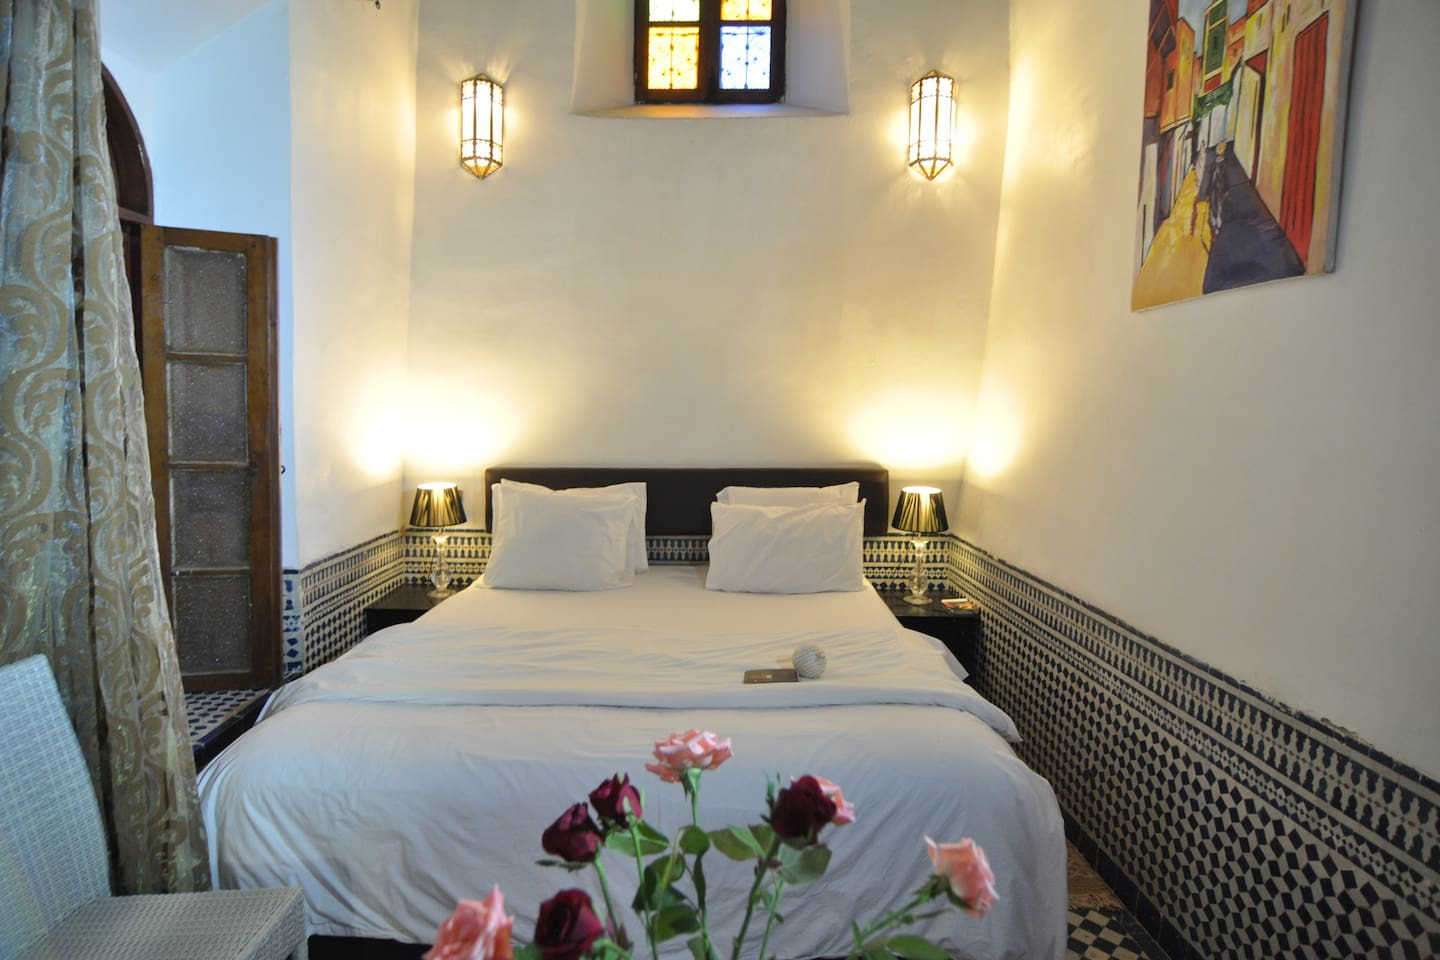 Riad Adarissa Driss Chra Bi F S M Dina Bed And Breakfasts For